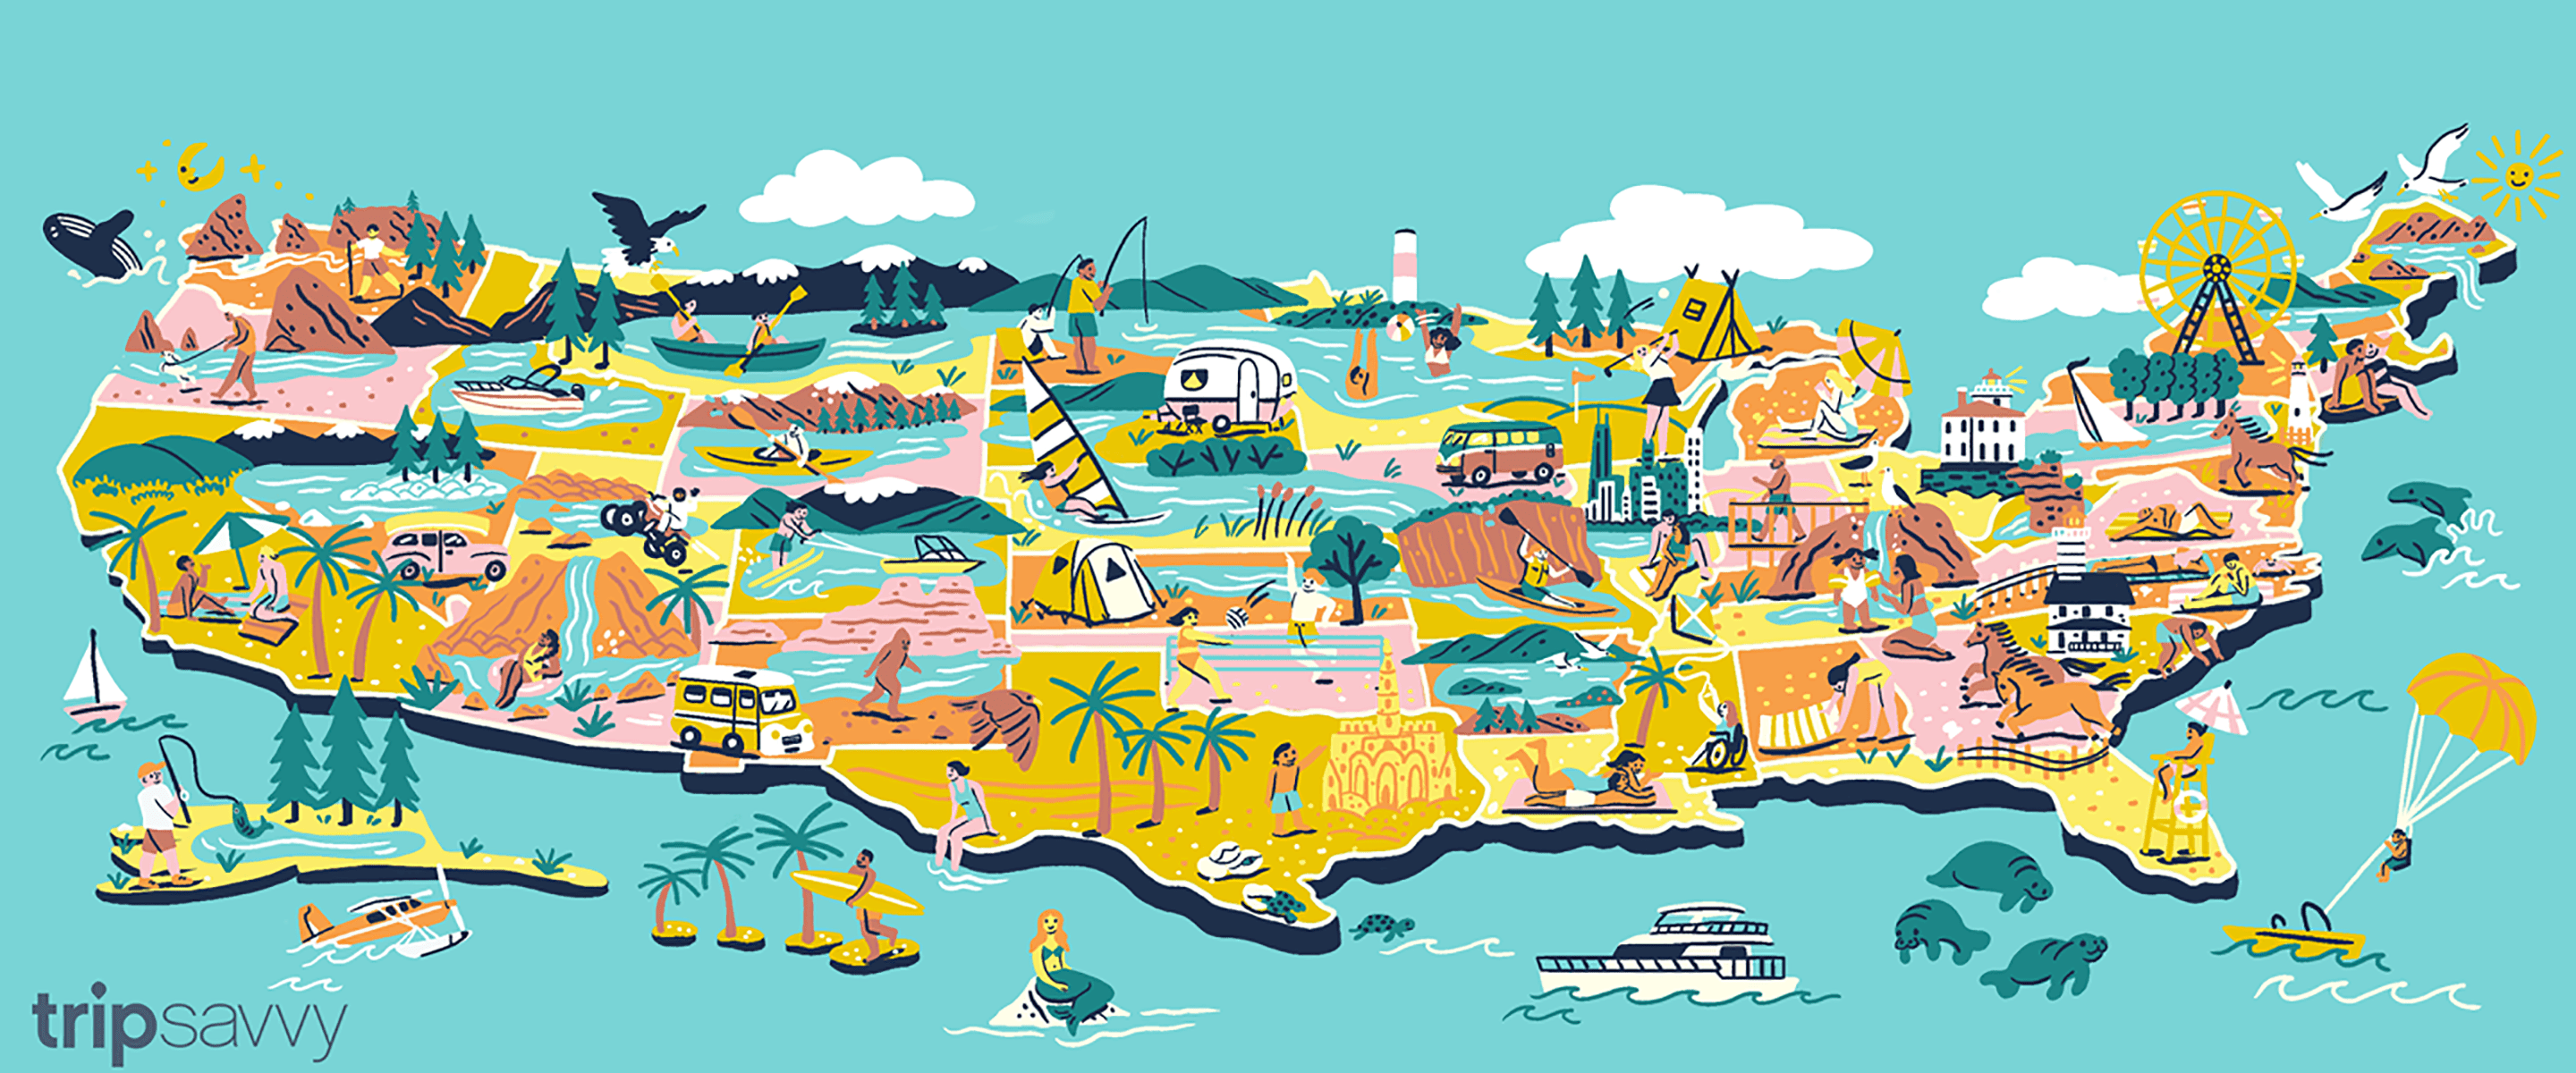 Illustration of the US map showing TripSavvy's picks for best beaches in every state